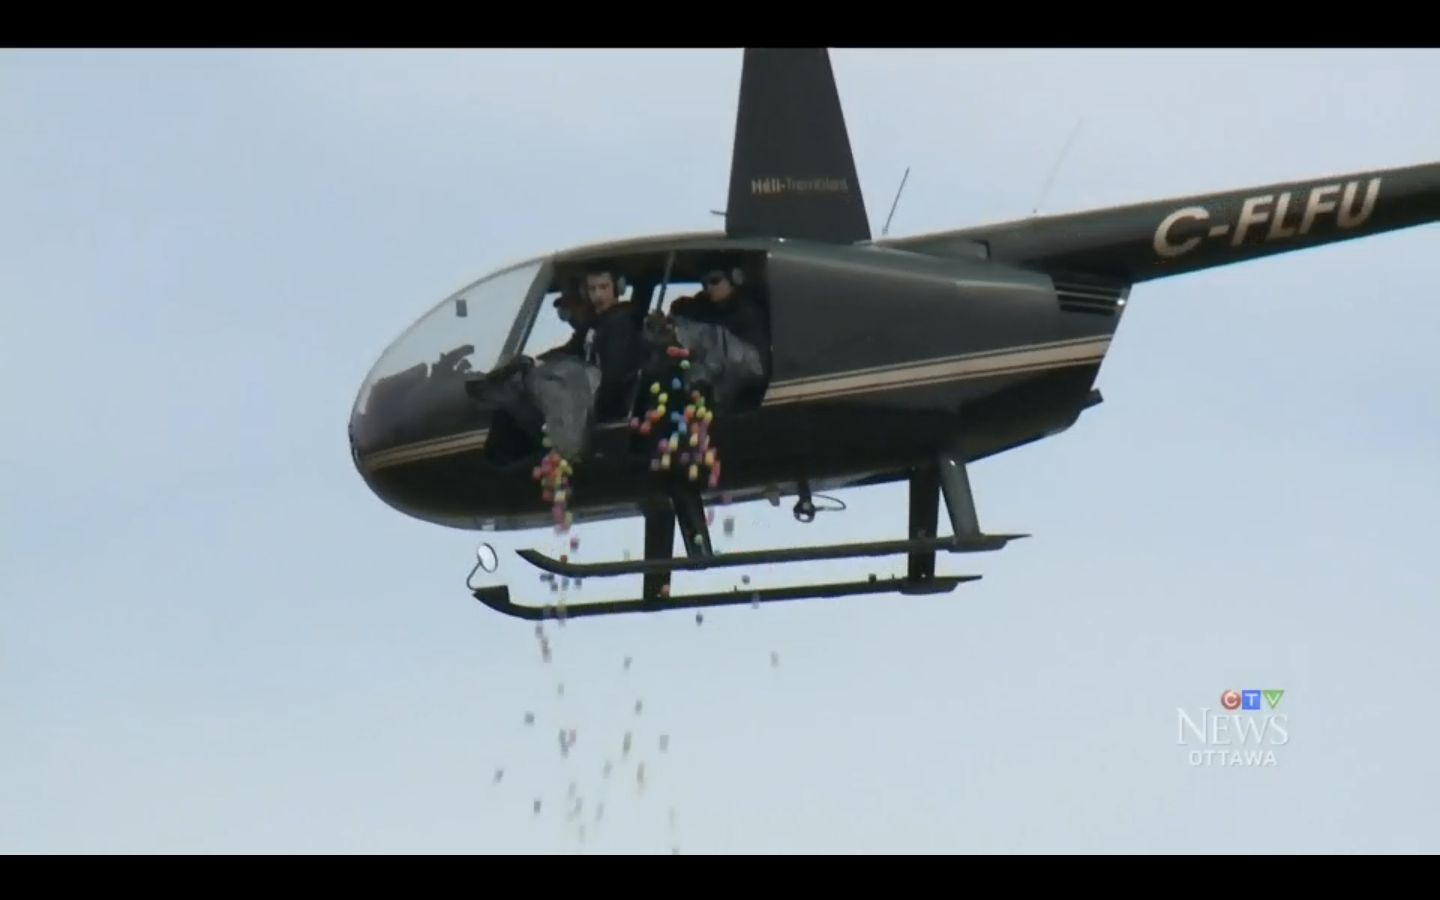 A helicopter is seen dumping bags full of Easter eggs during an Easter egg drop in Canada